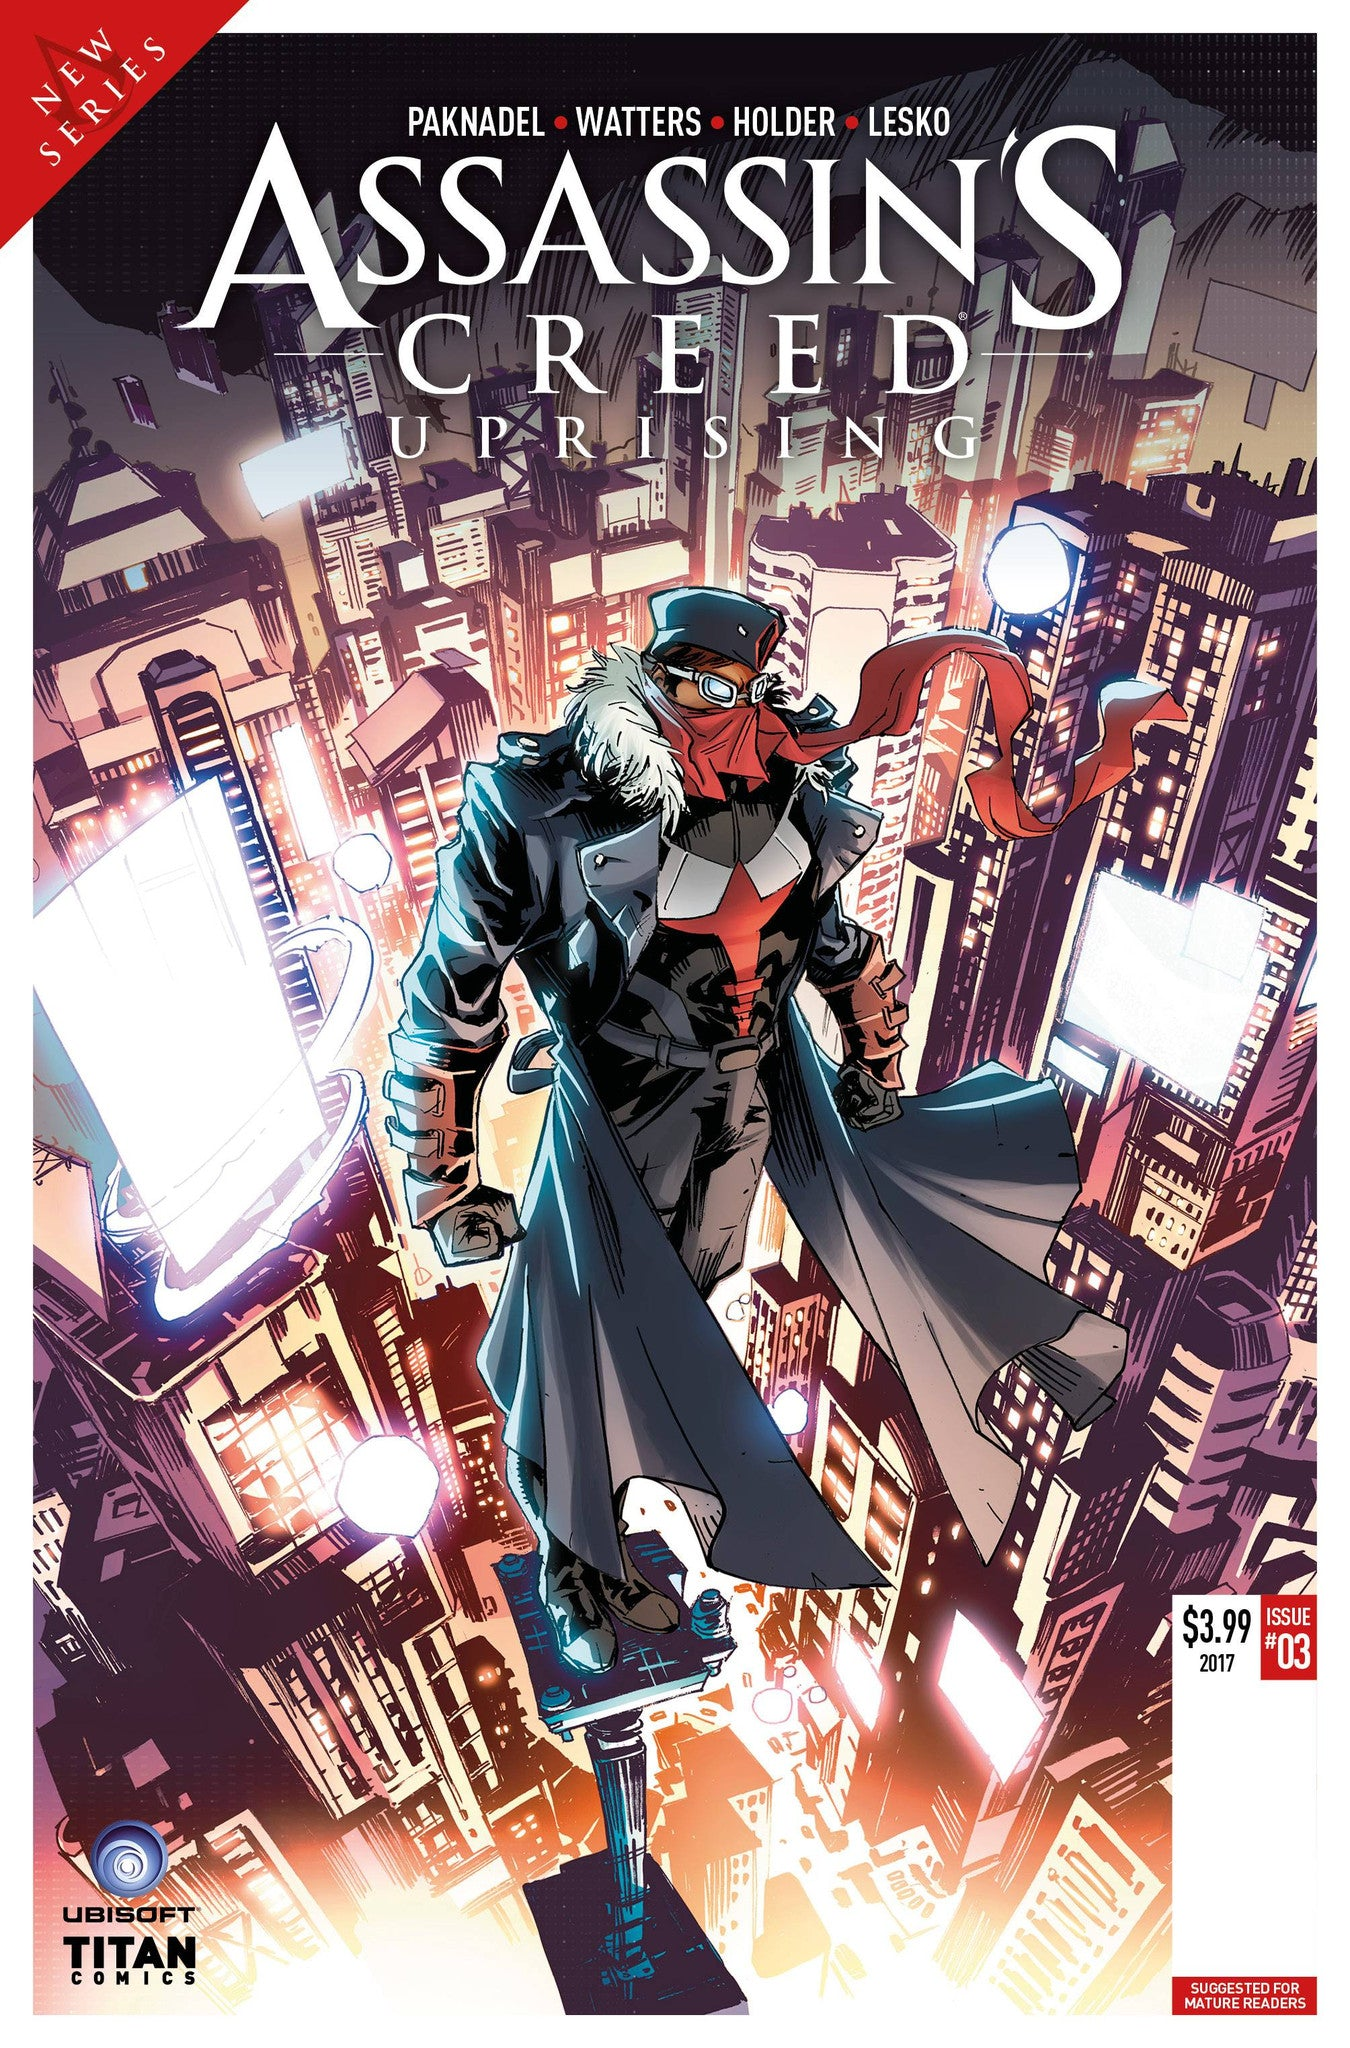 ASSASSINS CREED UPRISING #3 CVR B HOLDER